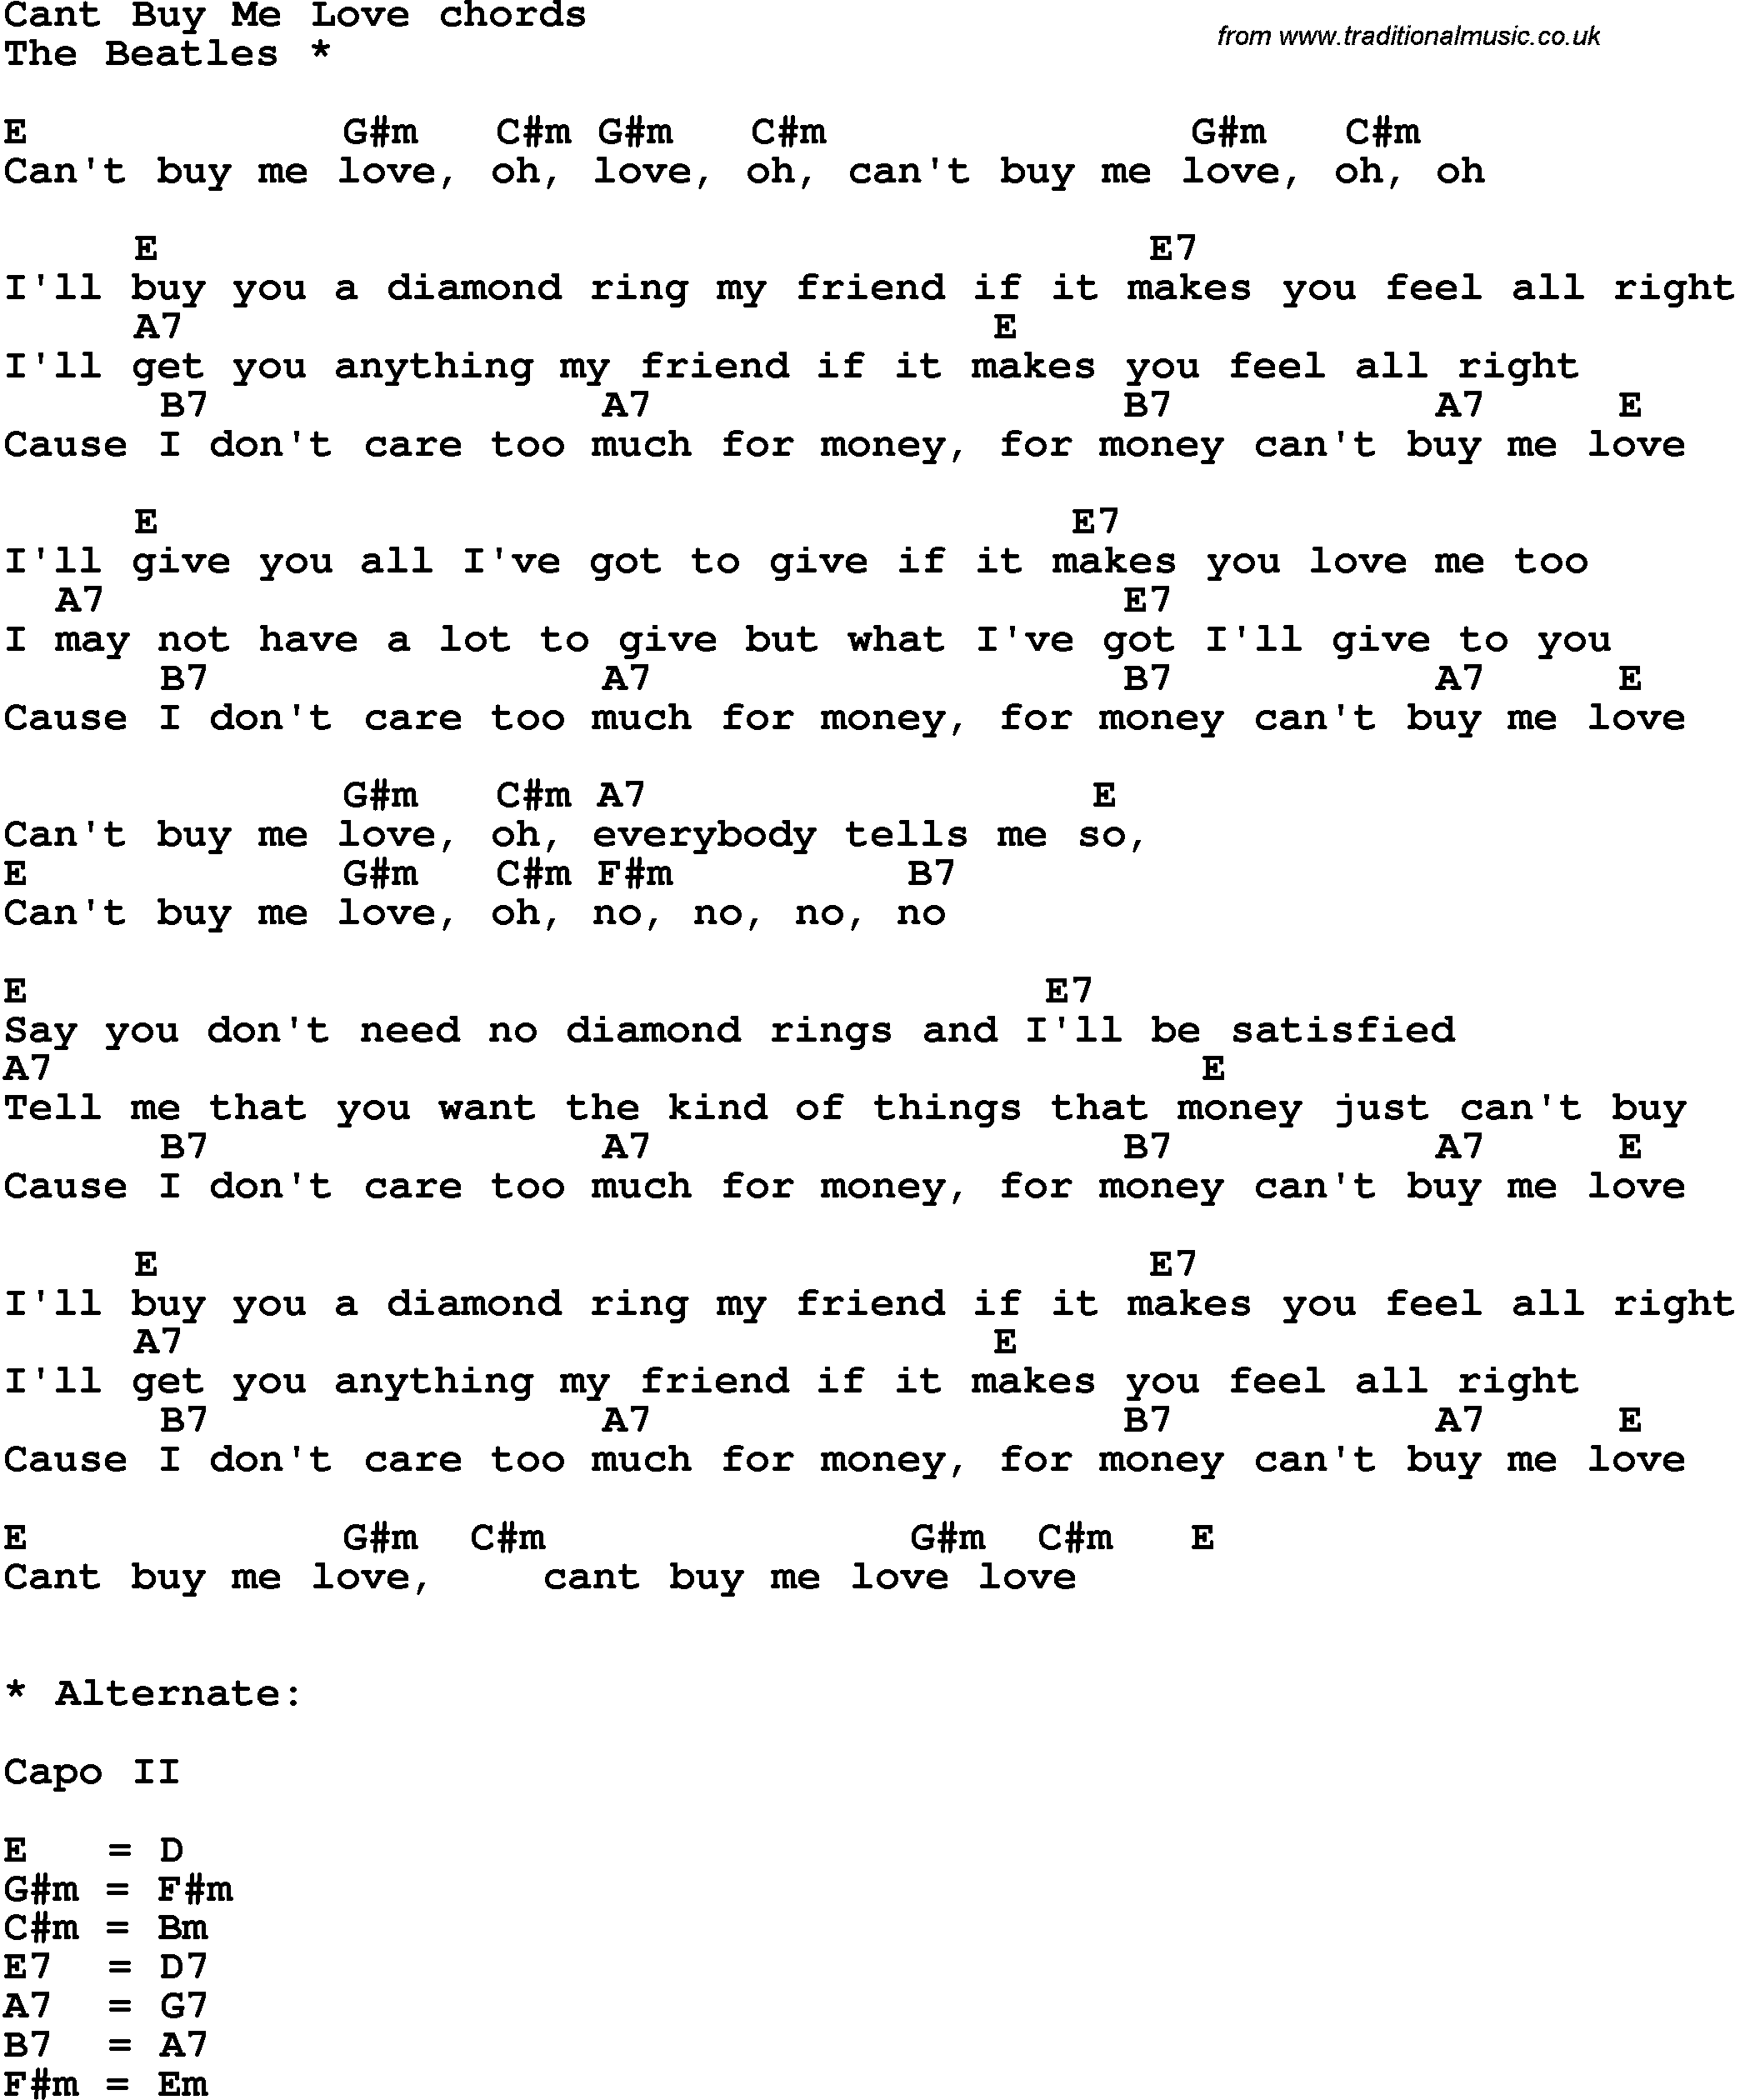 Song Lyrics With Guitar Chords For Cant Buy Me Love The Beatles